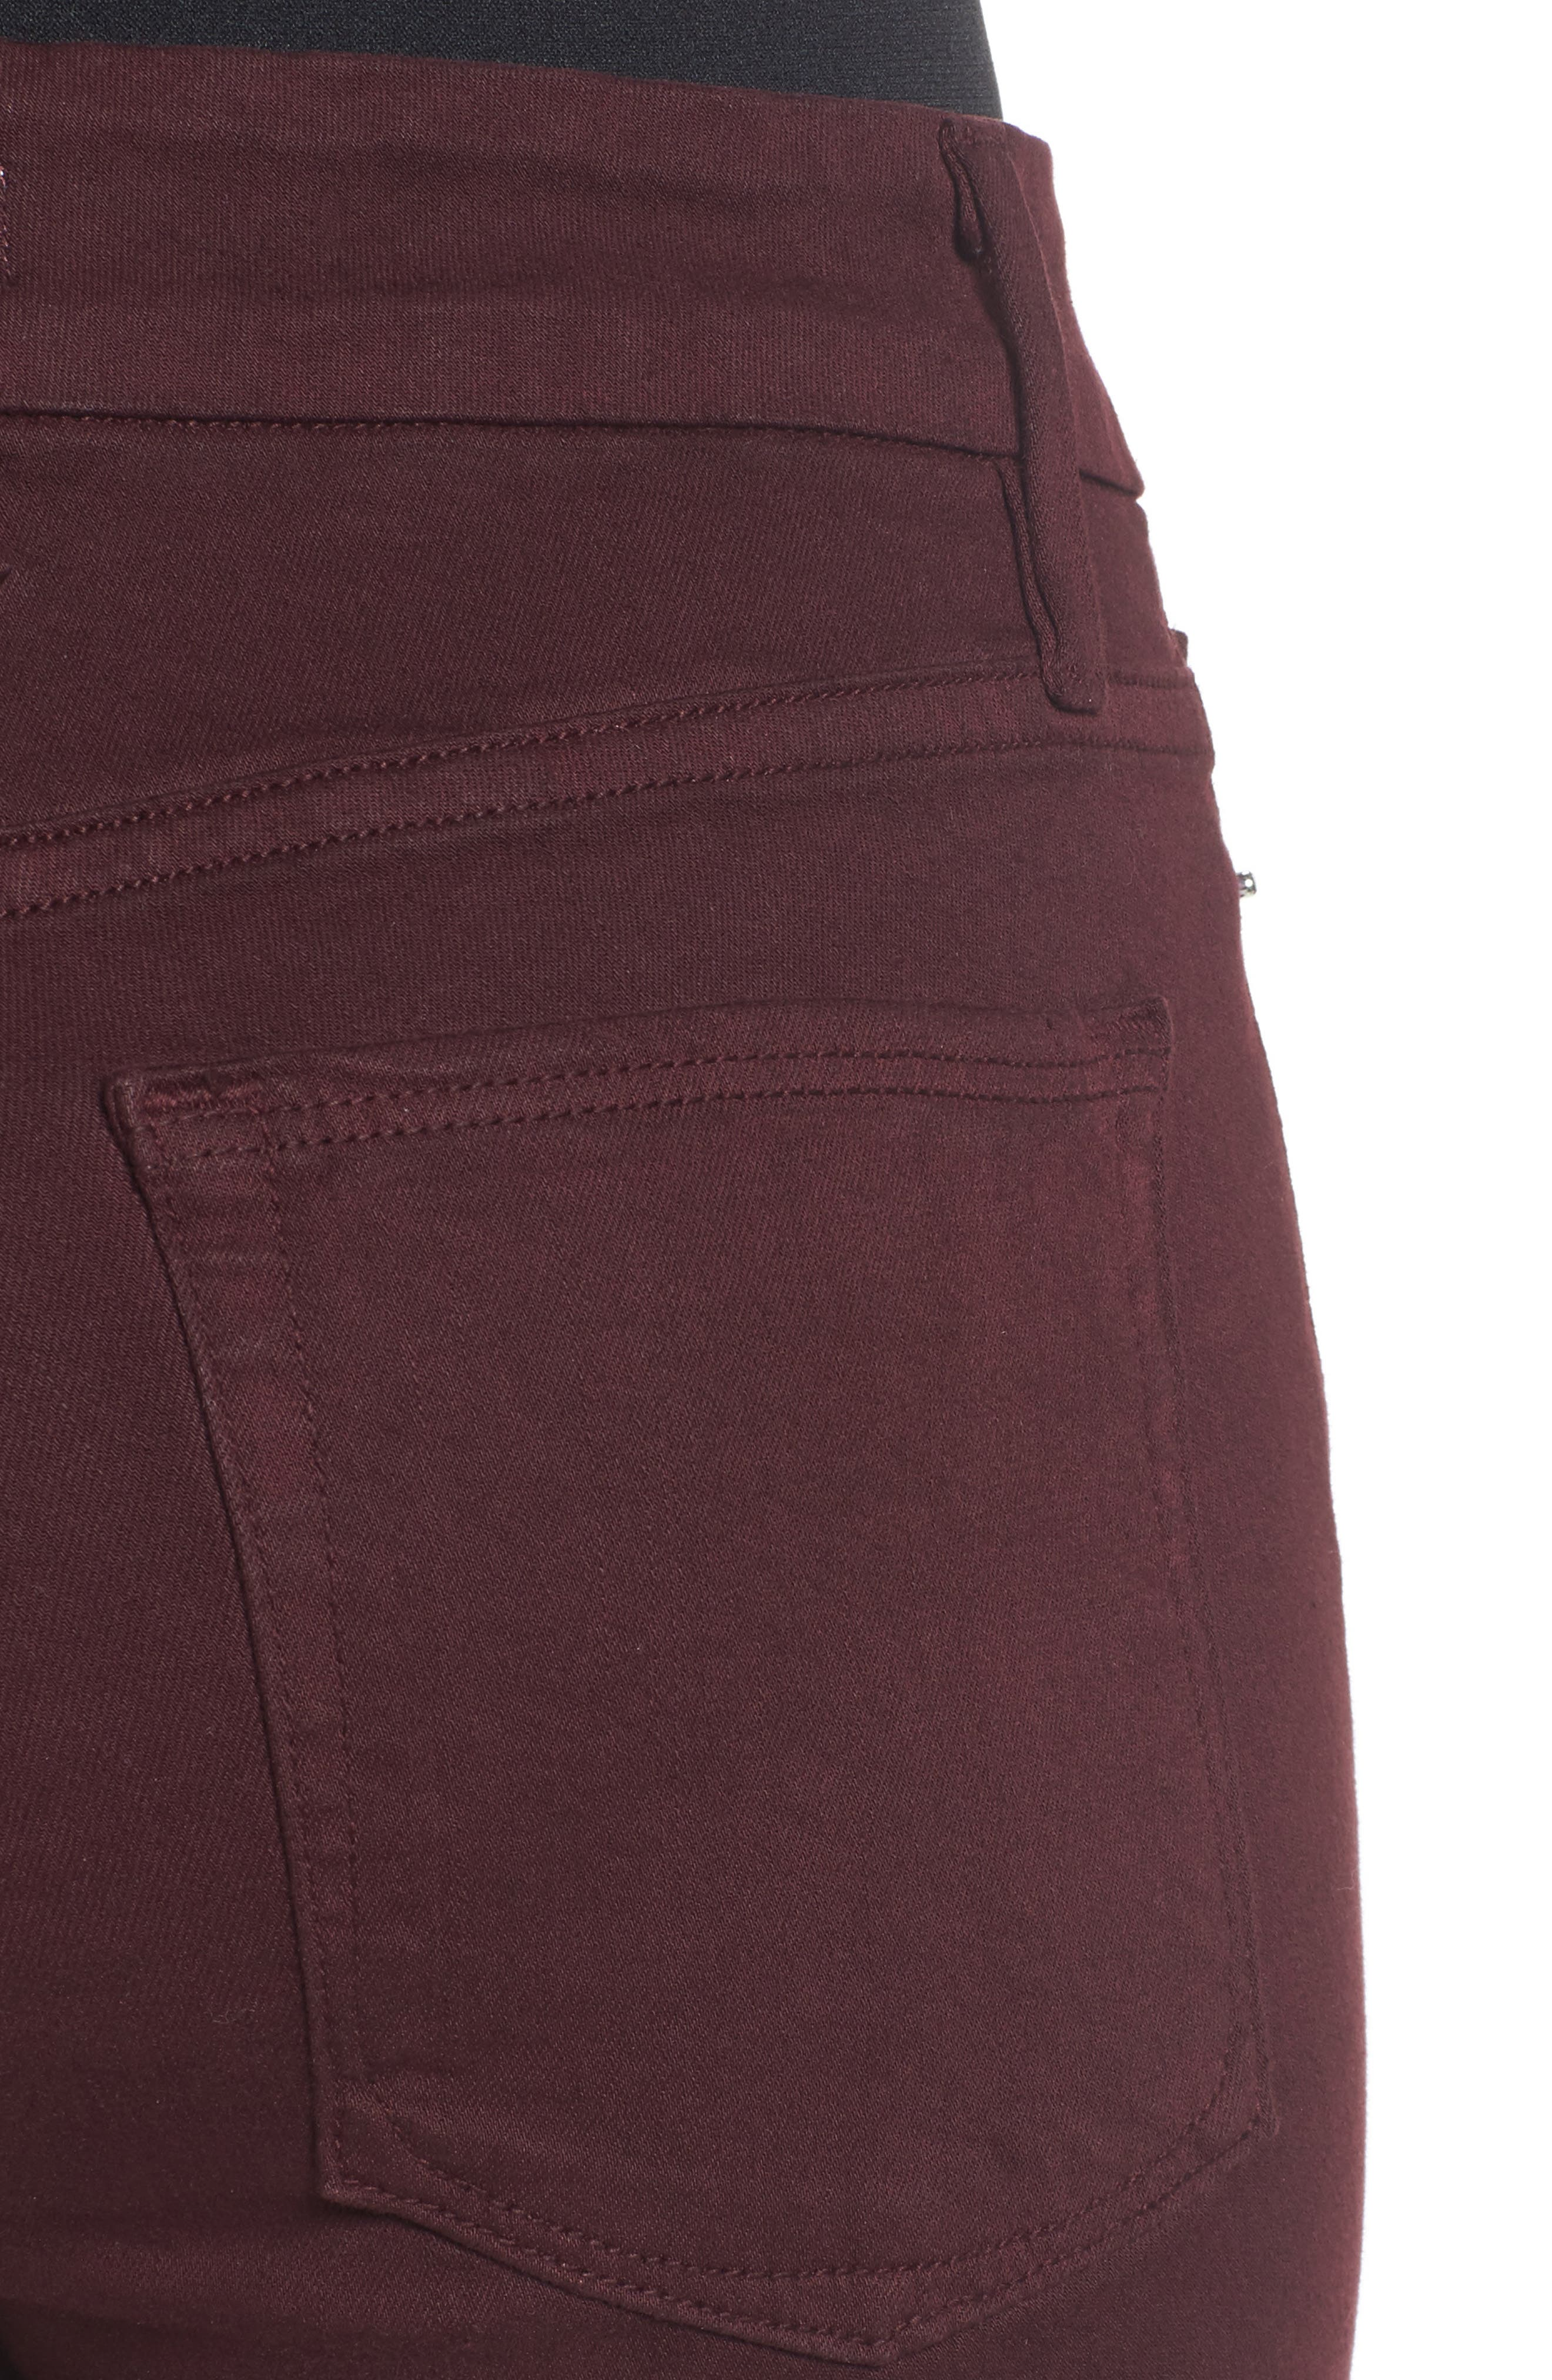 Good Legs High Waist Skinny Jeans,                             Alternate thumbnail 4, color,                             Burgundy